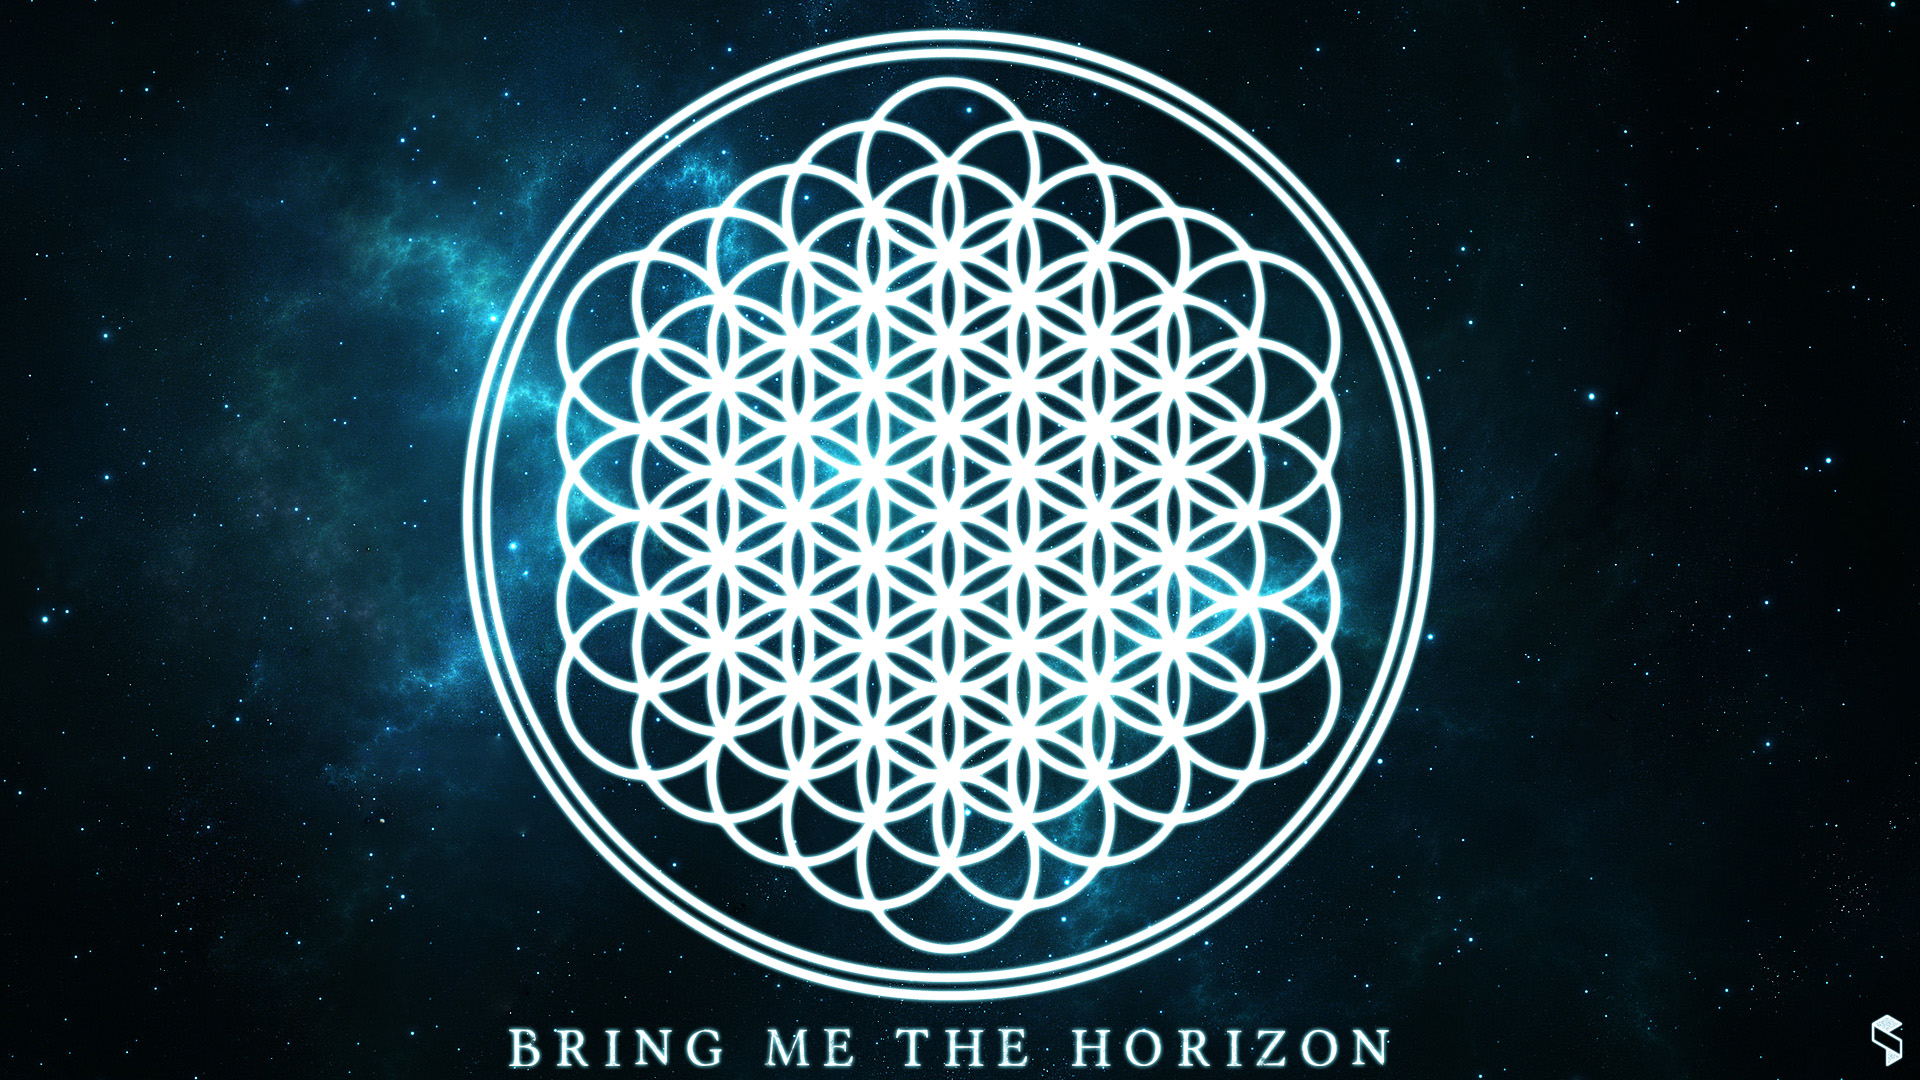 Free Download Bring Me The Horizon Wallpaper Lyrics Bring Me The H